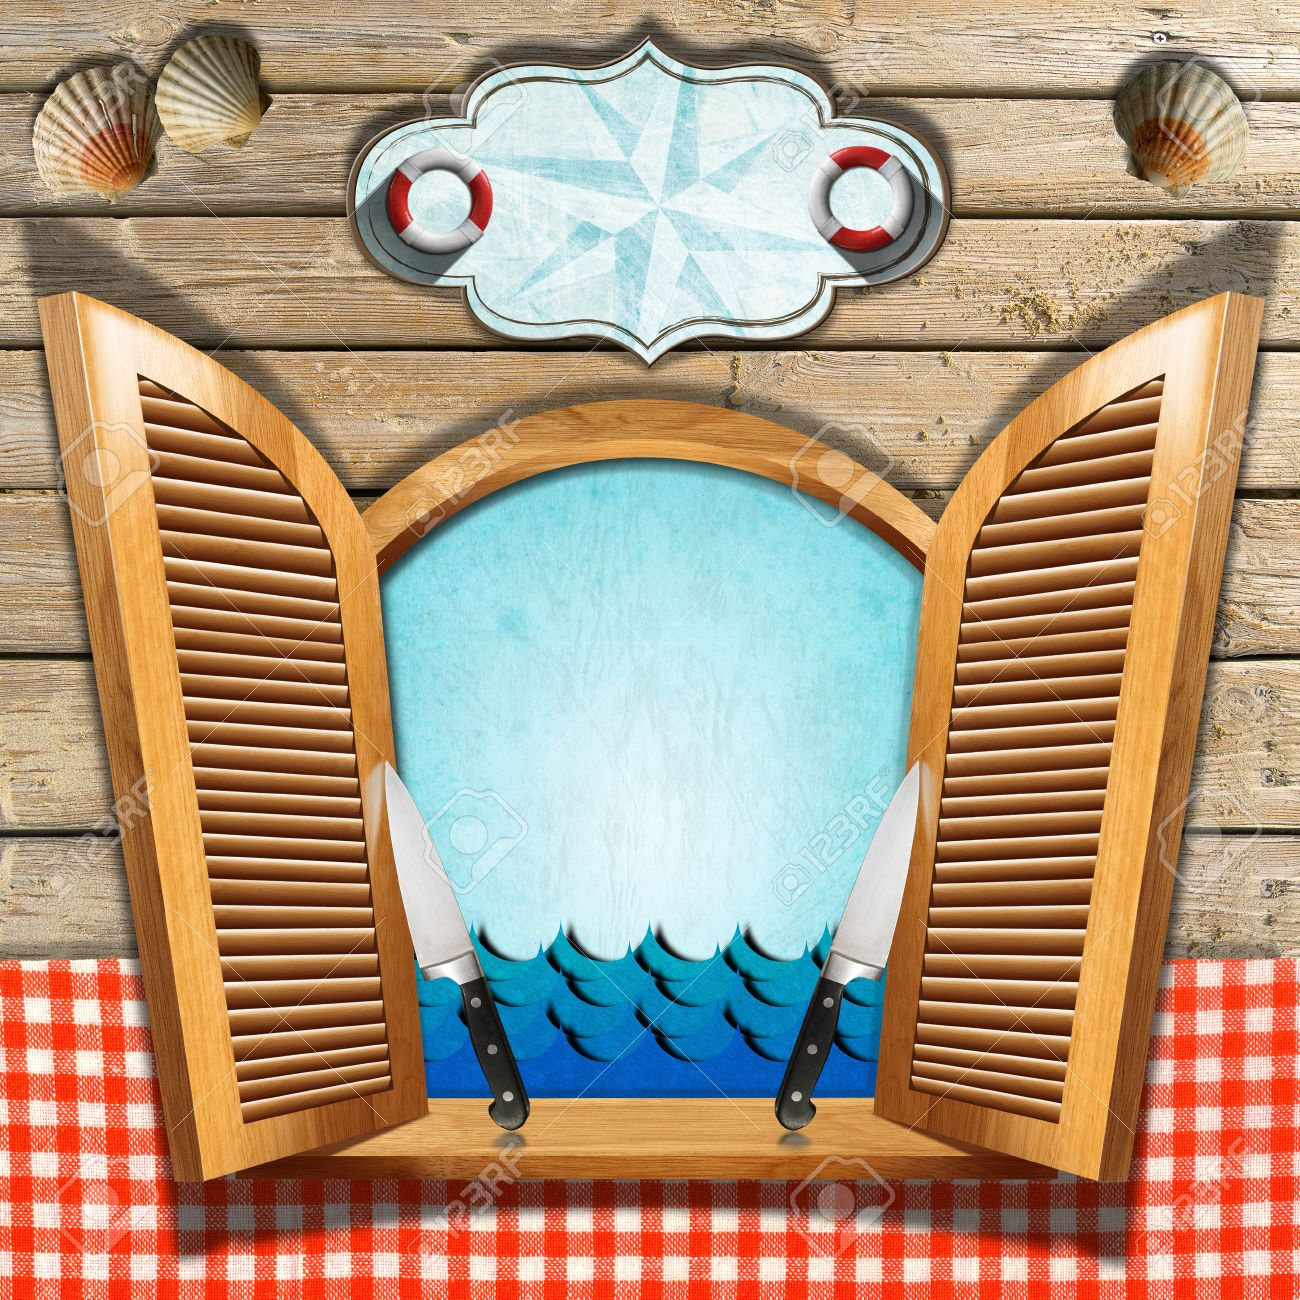 restaurant seafood menu with wooden window and open shutters